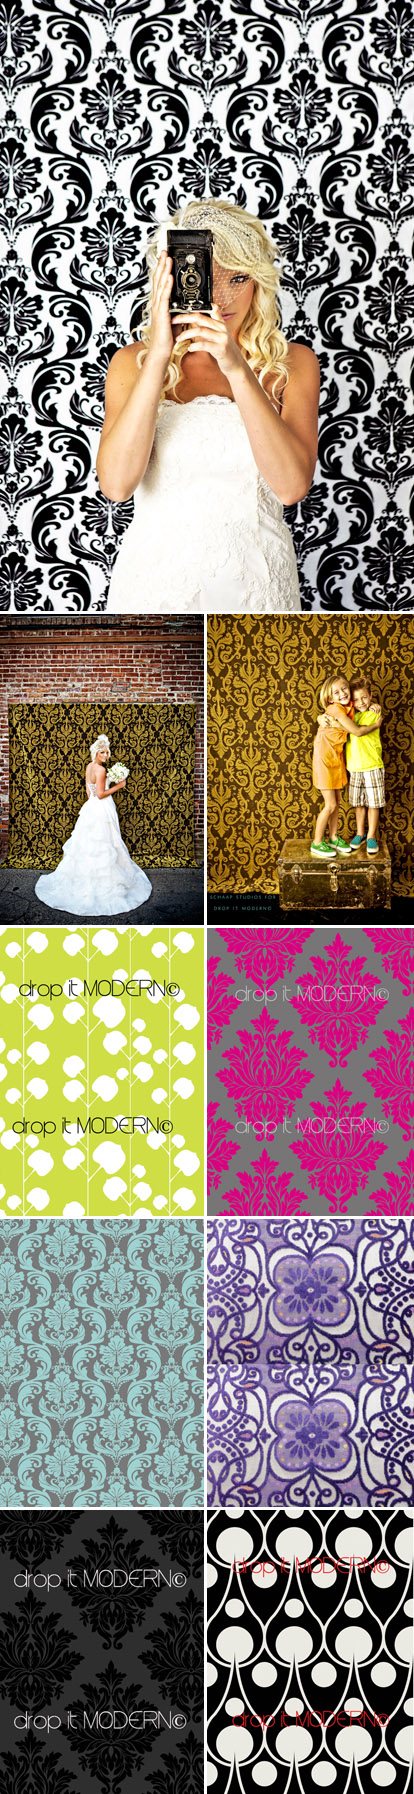 Damask and graphic print fabric photo backdrops from Drop It Modern, all images from dropitmodern.com and Schaap Studios